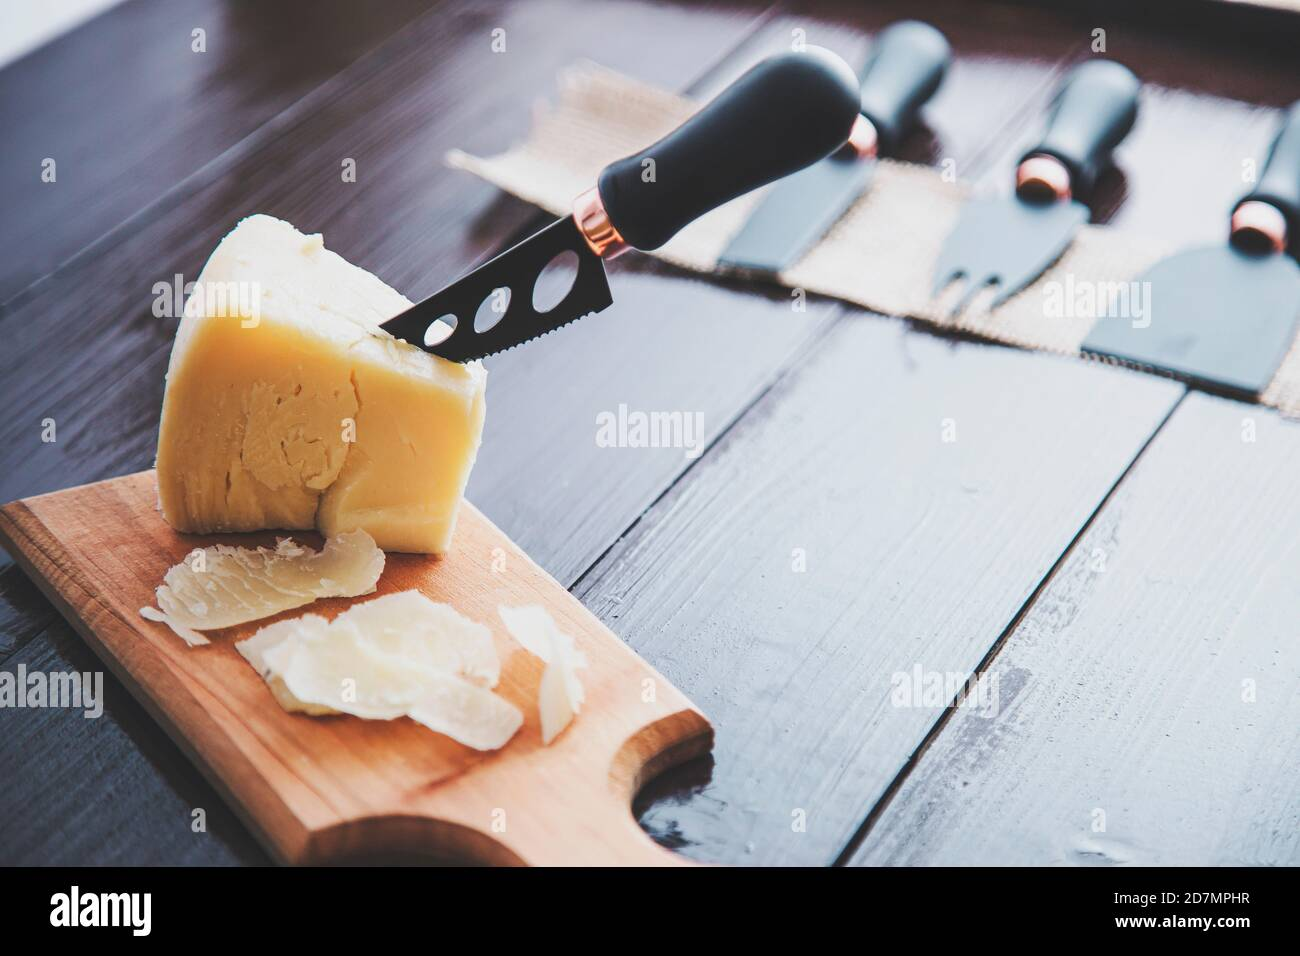 Composed cloesup detail view of aged cheddar cheese with cheese knife set, over vintage brown wooden backdrop Stock Photo